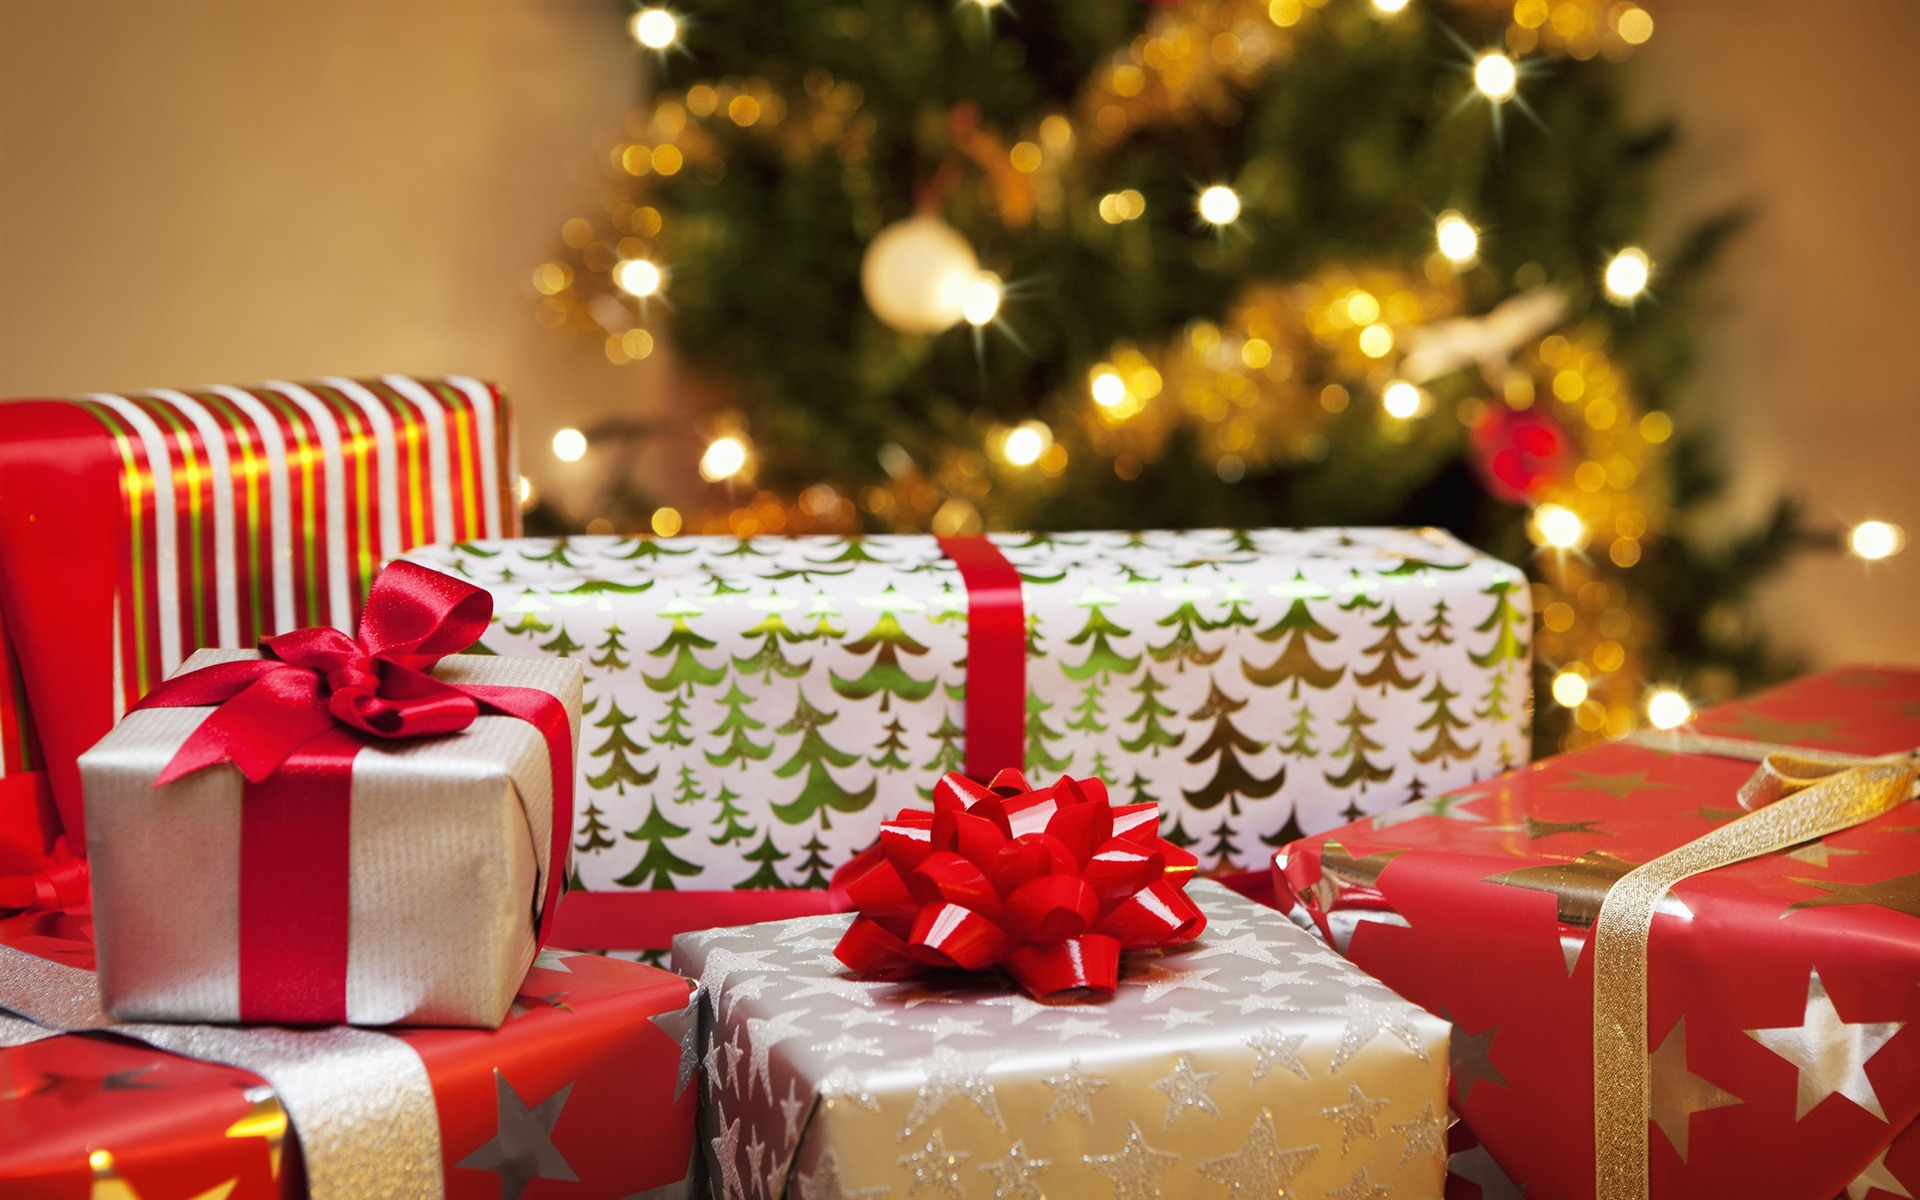 2018 Christmas day gifts for kids Wallpaper 1920x1200